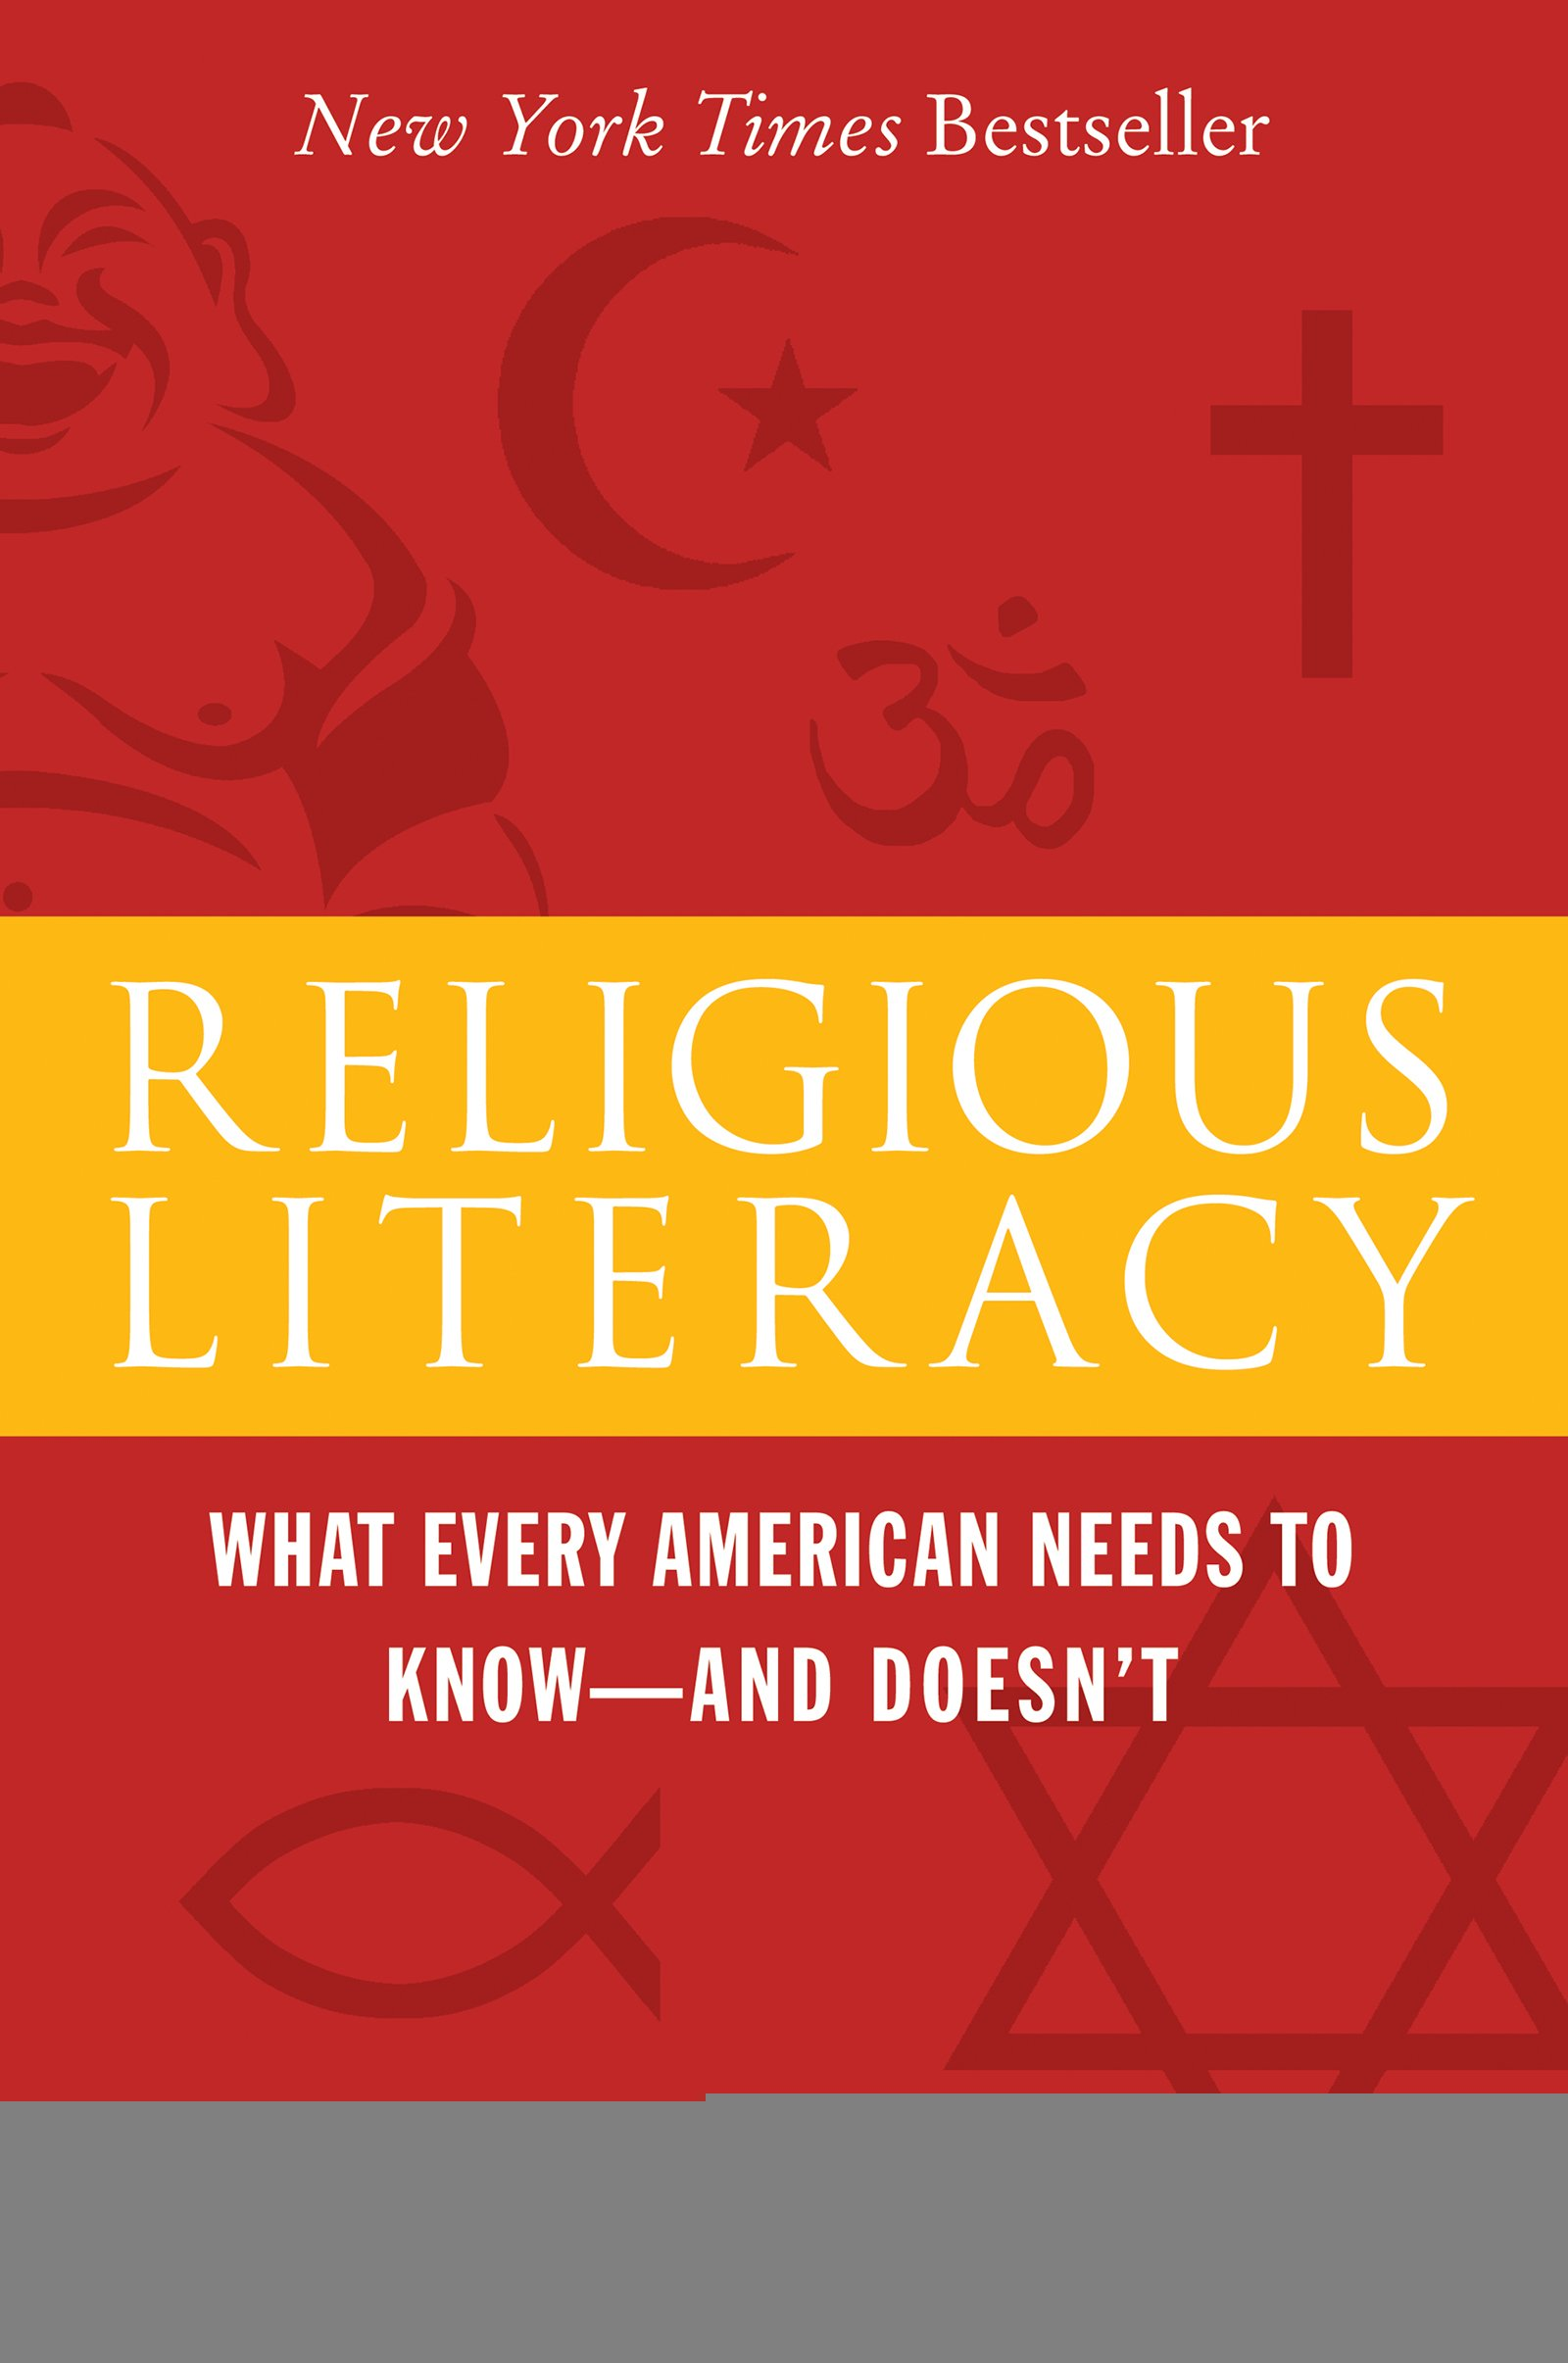 Religious Literacy: What Every American Needs to